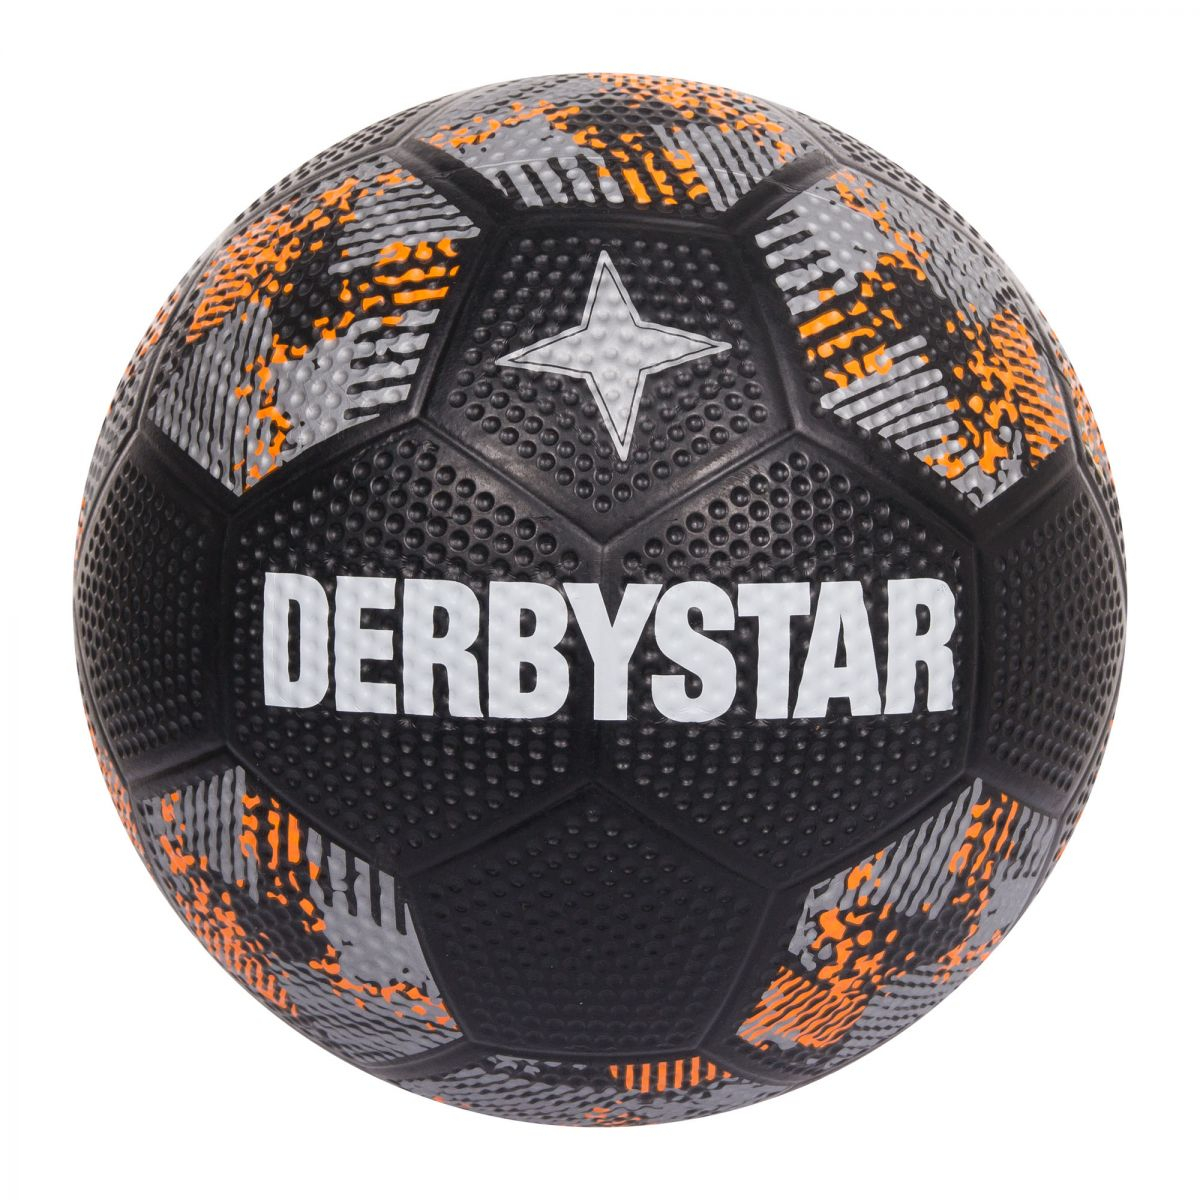 https://www.kwd.nl/media/catalog/product/s/t/streetbal_derbystar.jpg